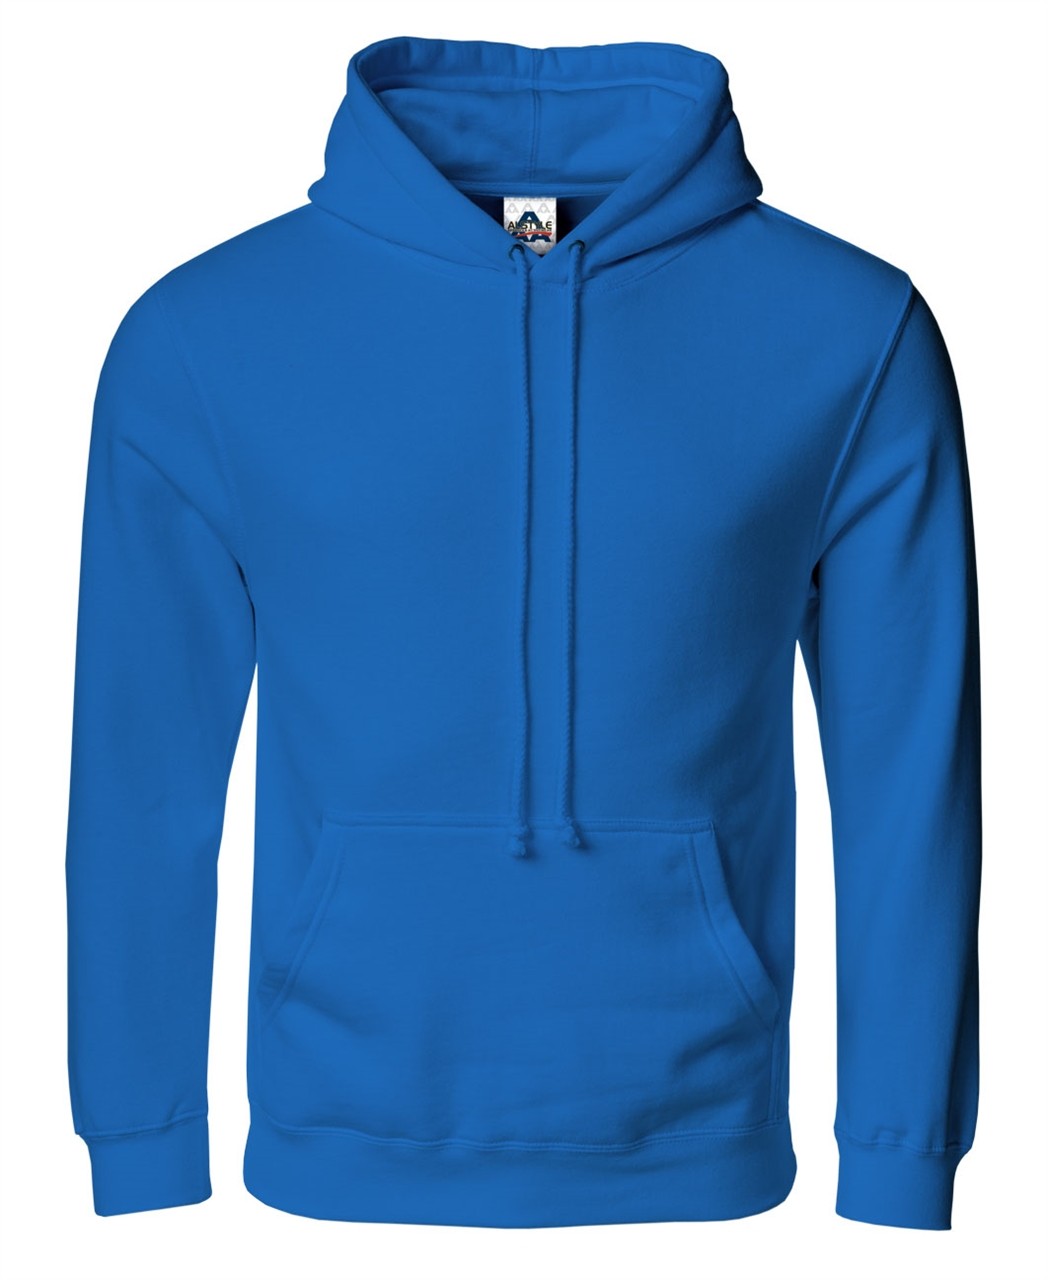 Picture of Alstyle Apparel Alstyle Adult Pullover Hoodie